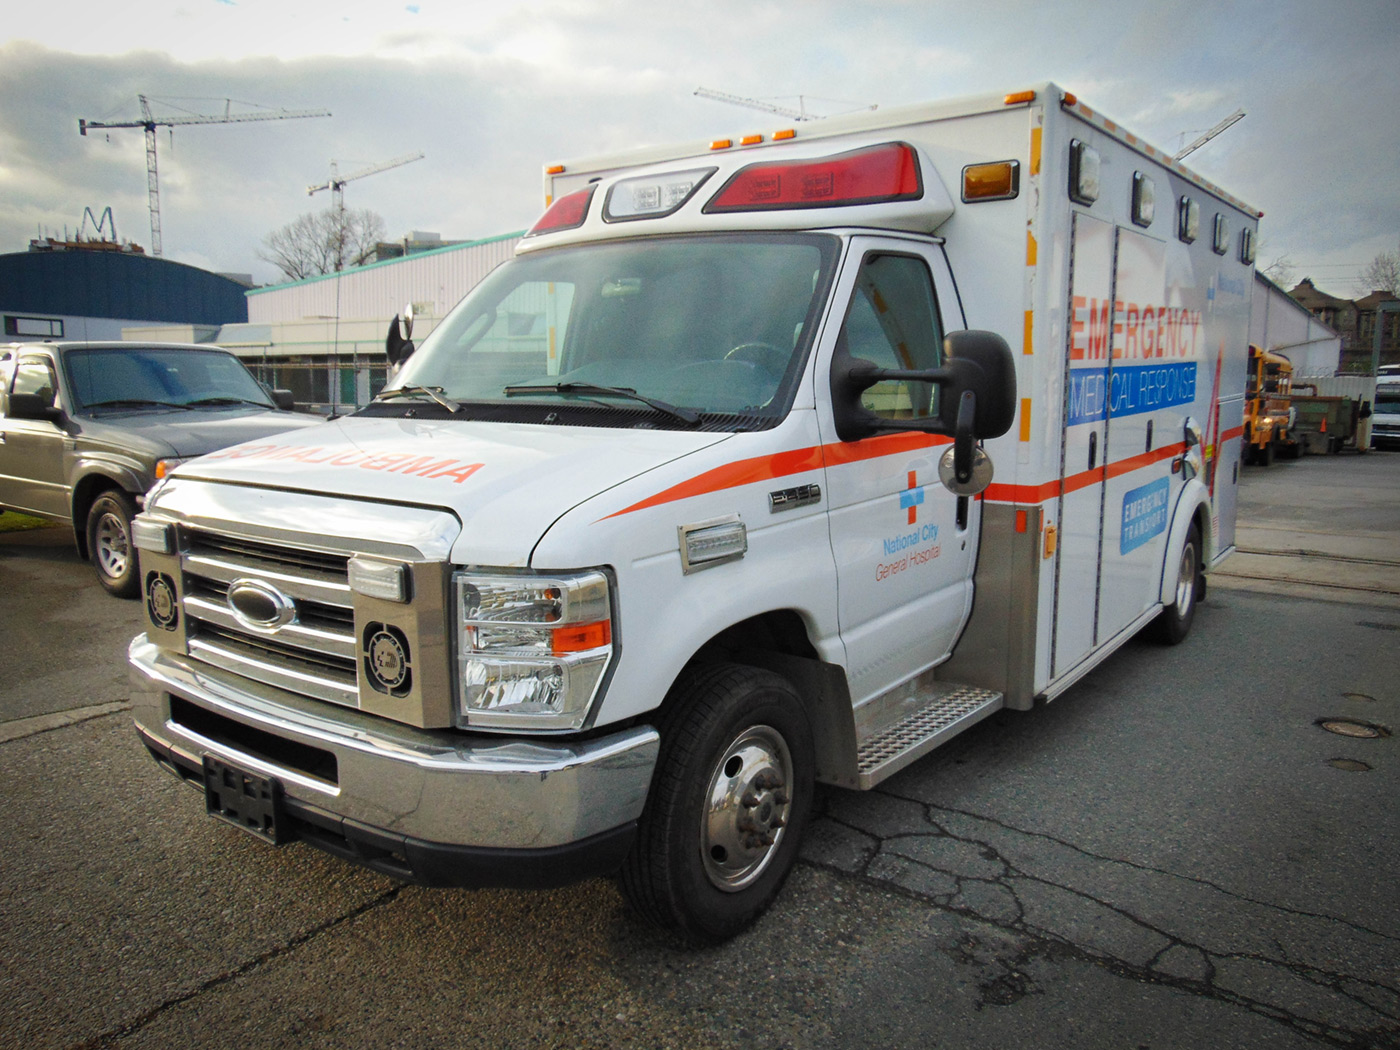 Picture Ambulances & Movie Vehicle Rentals